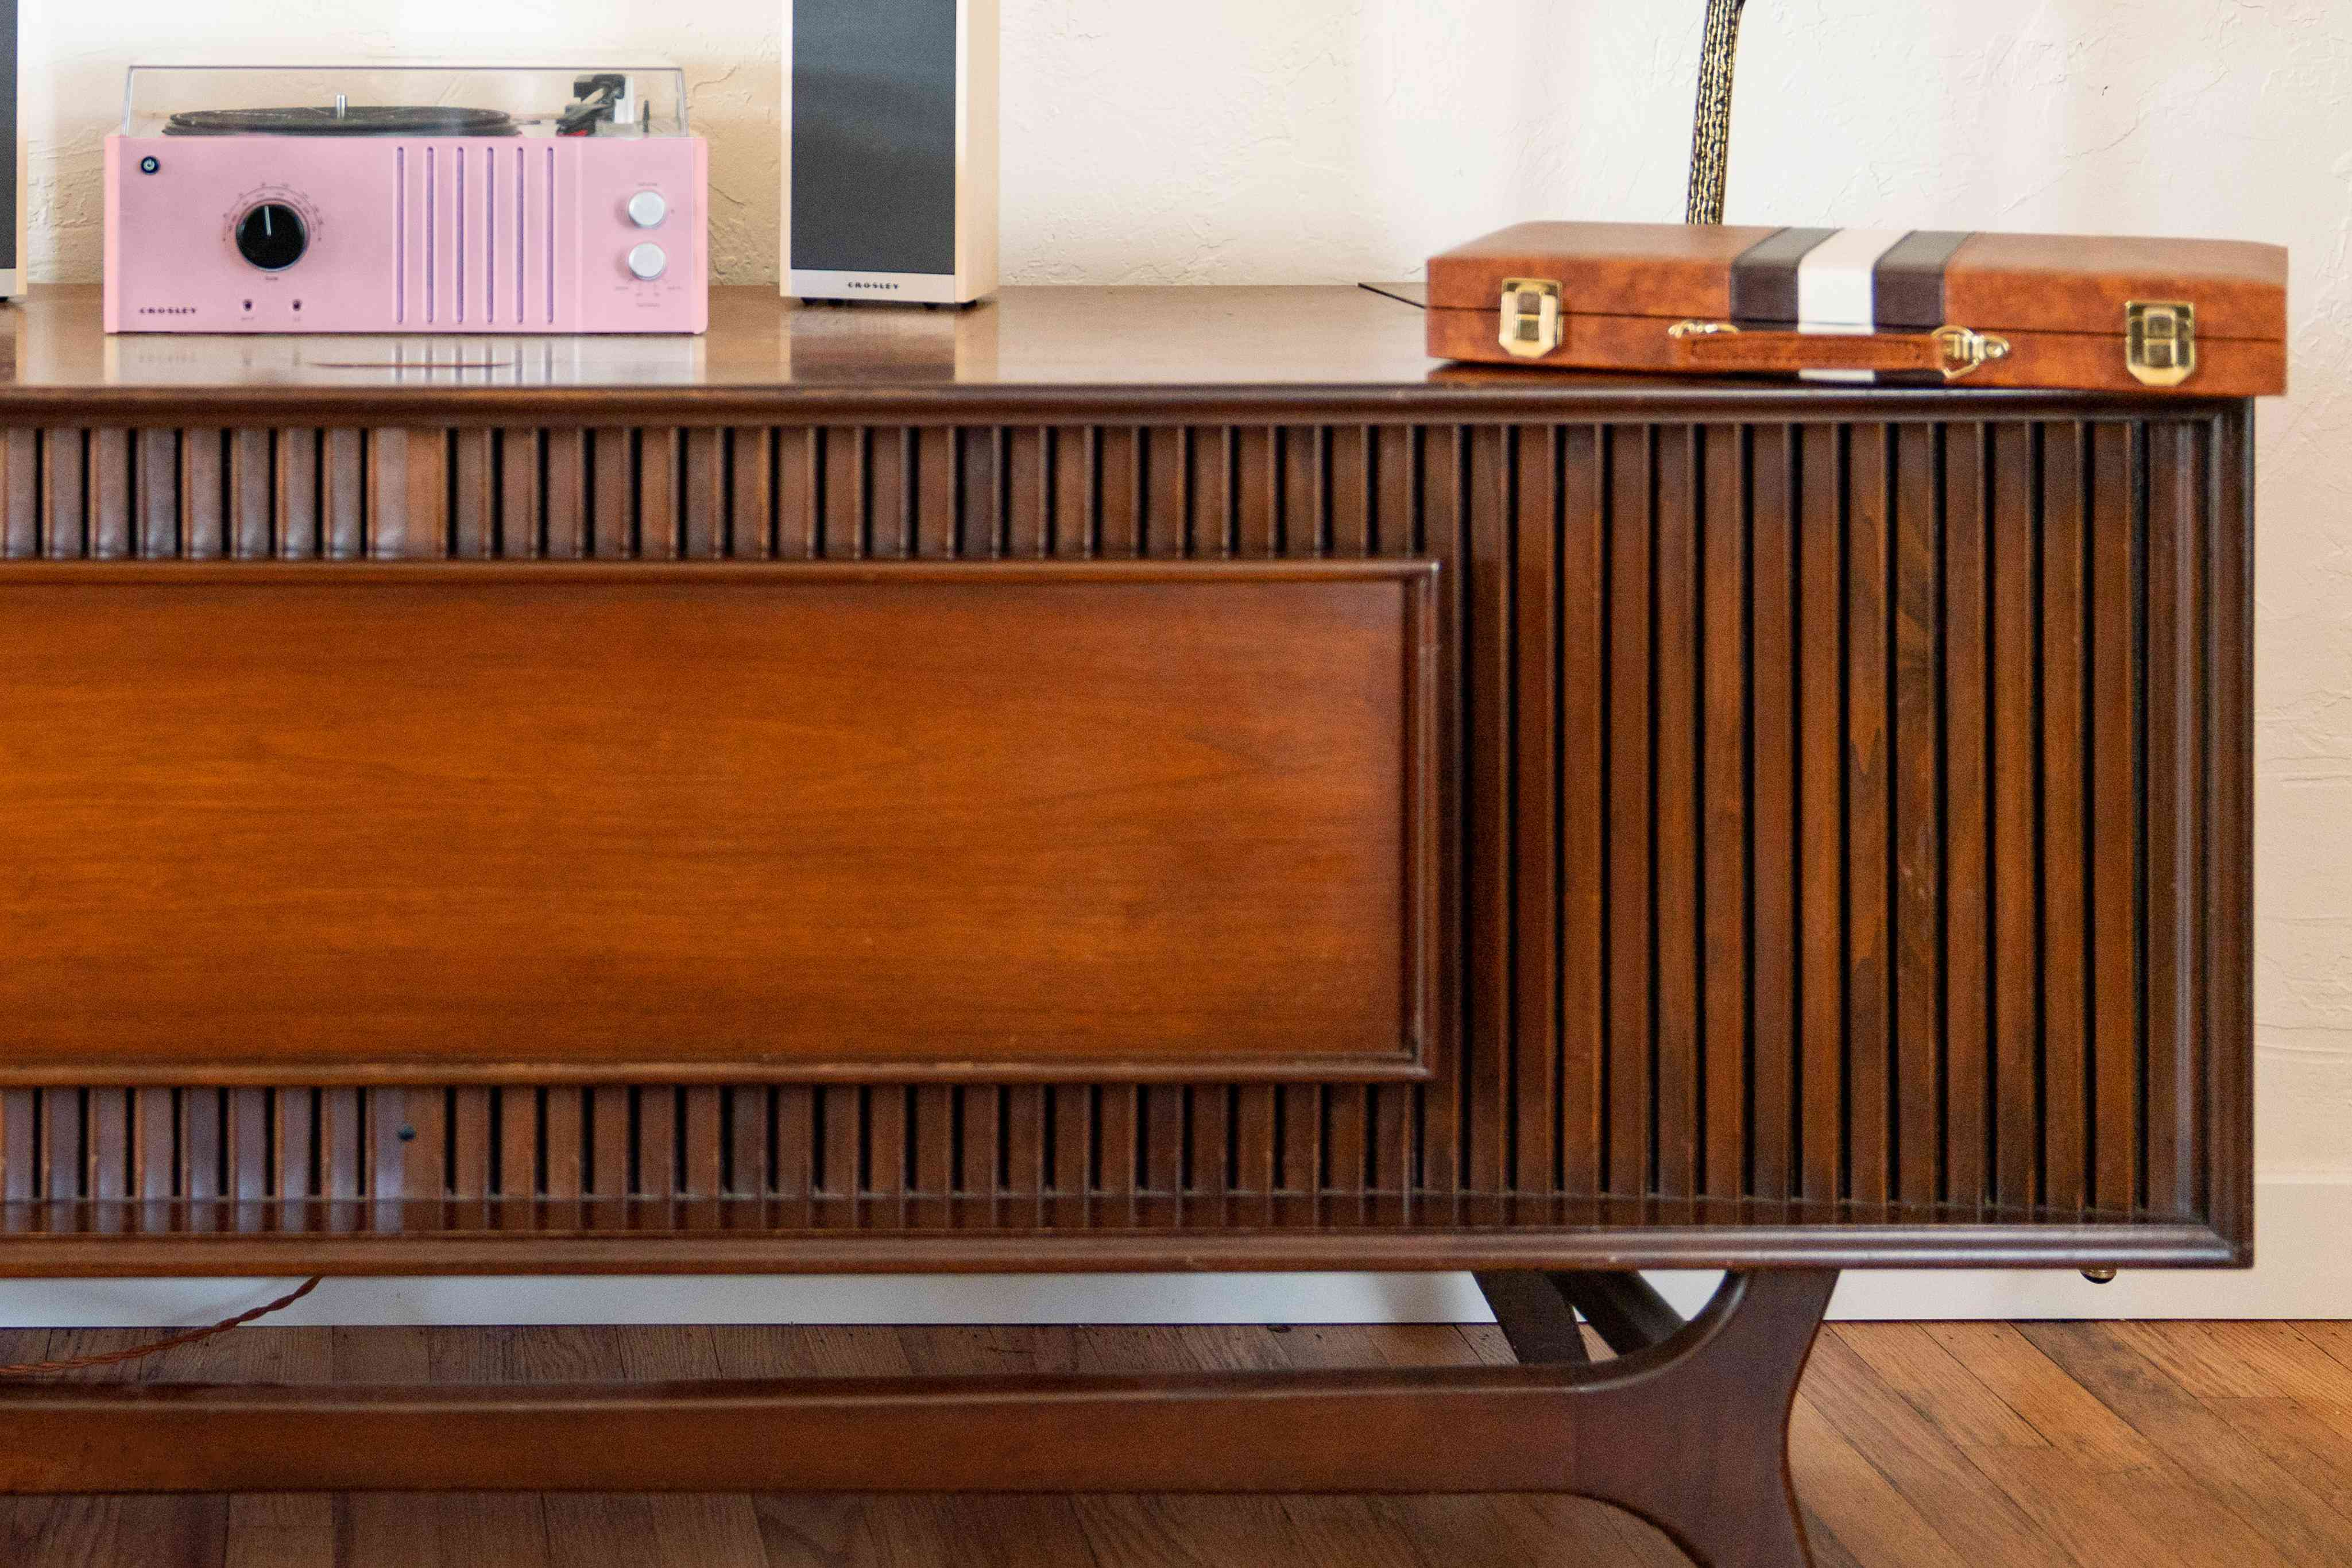 Mid-century modern styled cabinet with sleek lines in front and decor items on top closeup